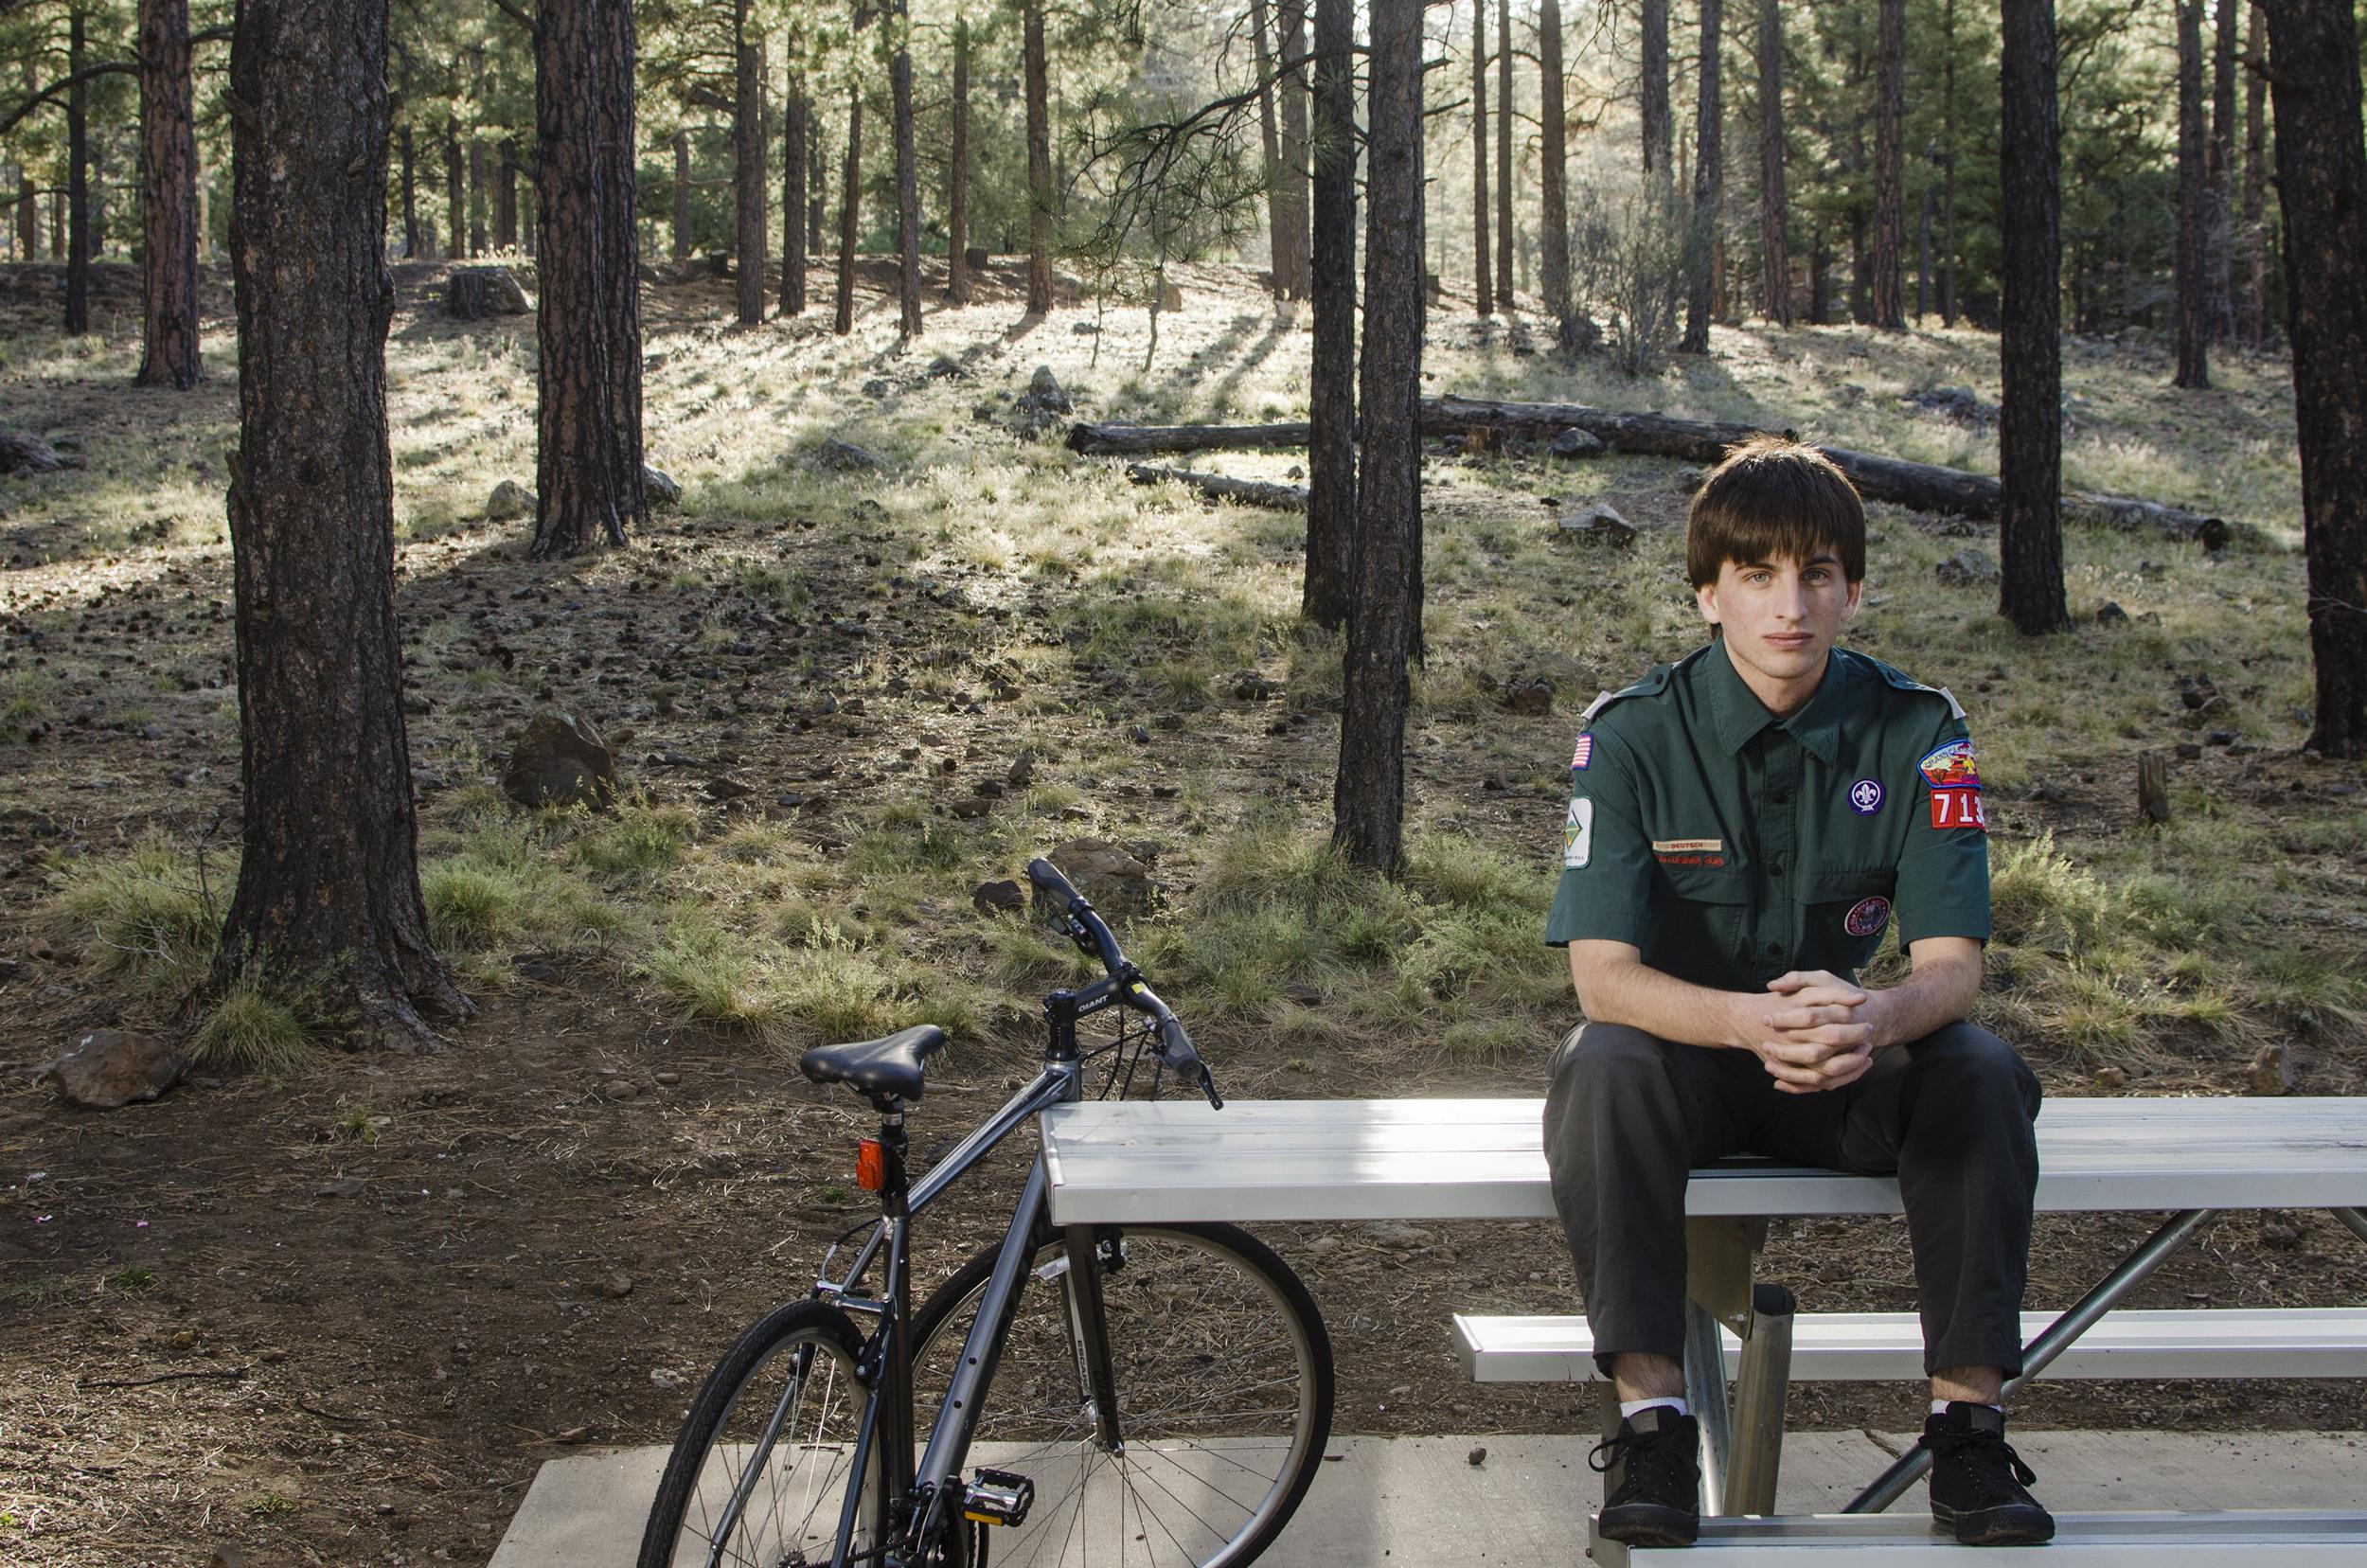 Image: Garrett Bryant, member of The Boy Scouts high adventure